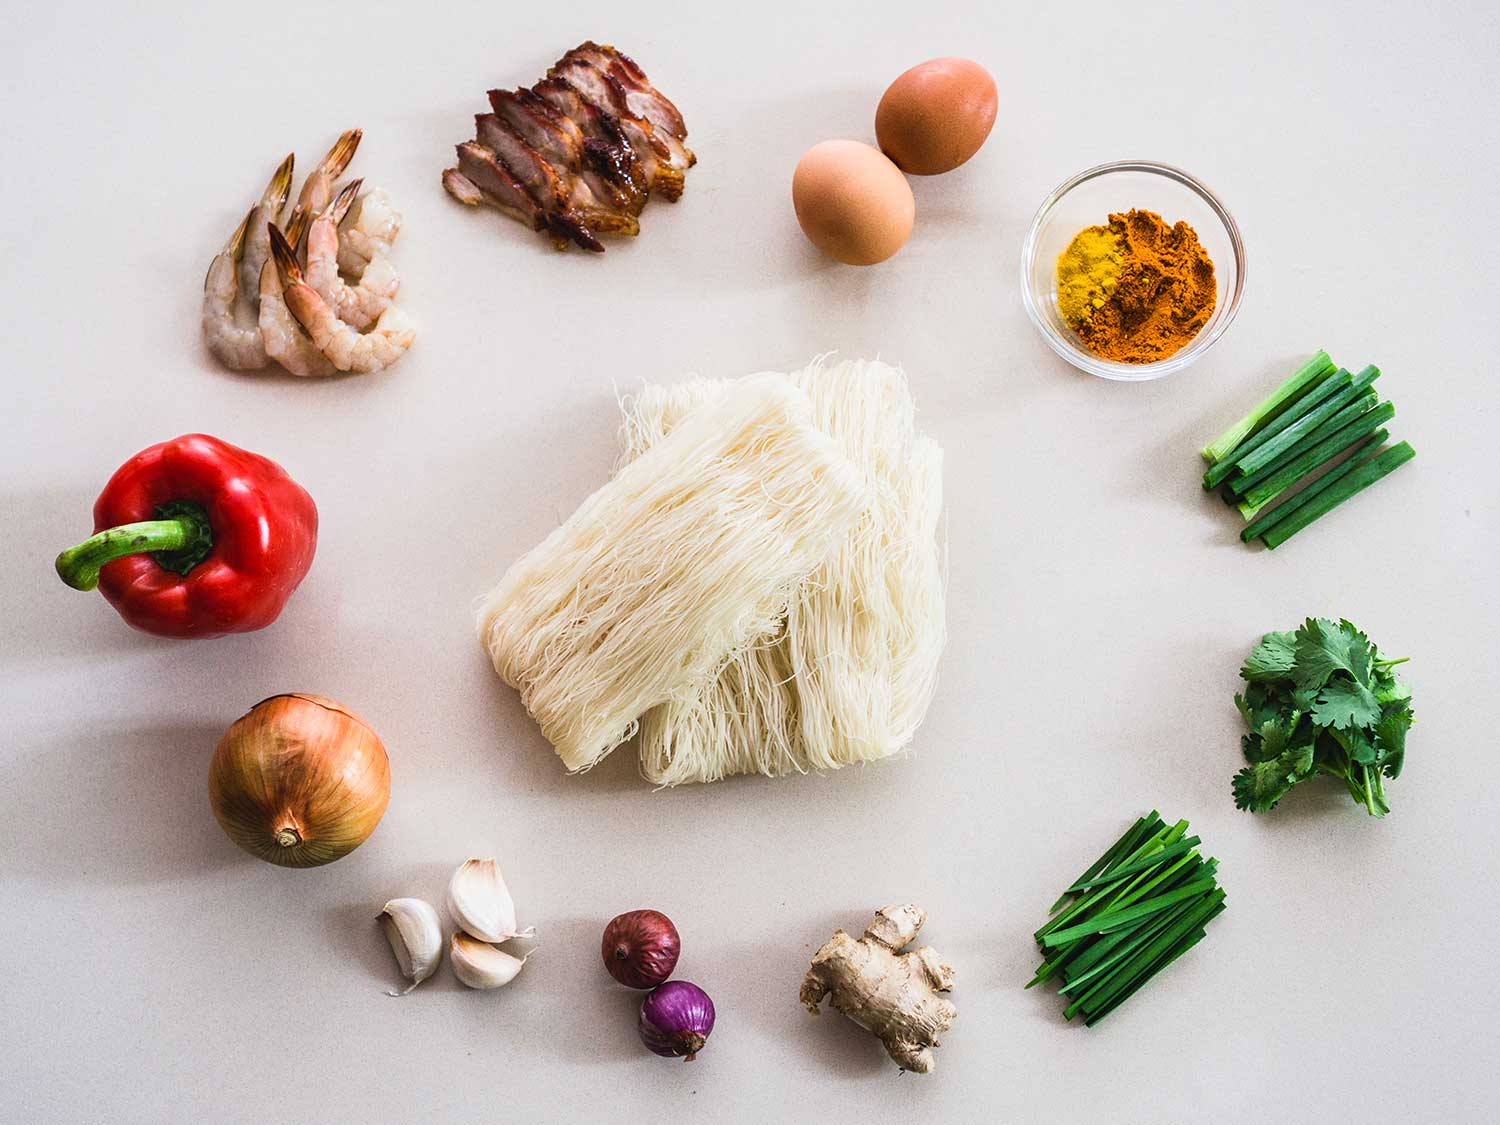 Rice vermicelli and other ingredients for Singapore Noodles.